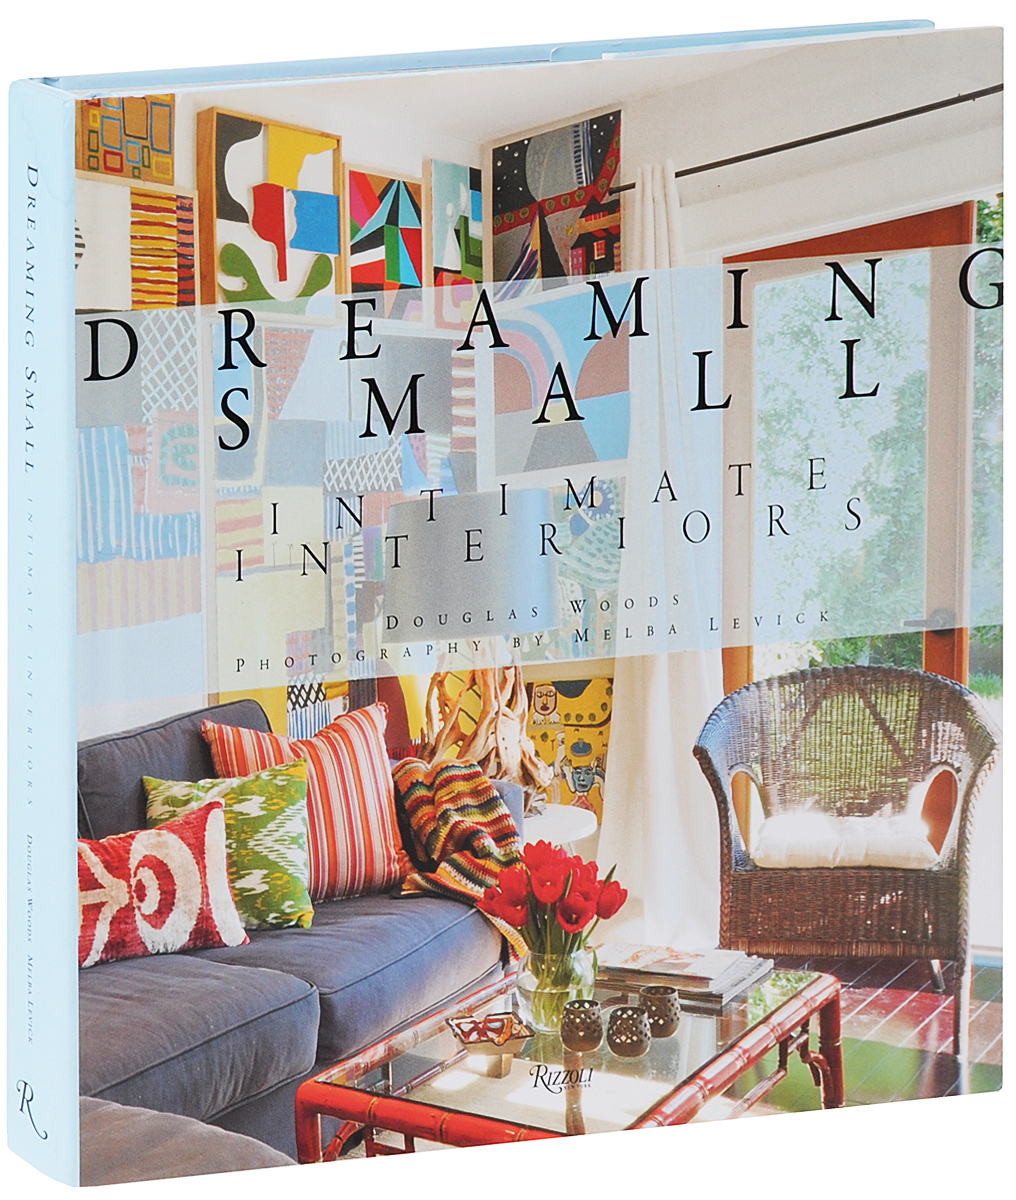 Dreaming Small: Intimate Interiors solvi dos santos laura gutman hanhivaara baltic homes inspirational interiors from northern europe